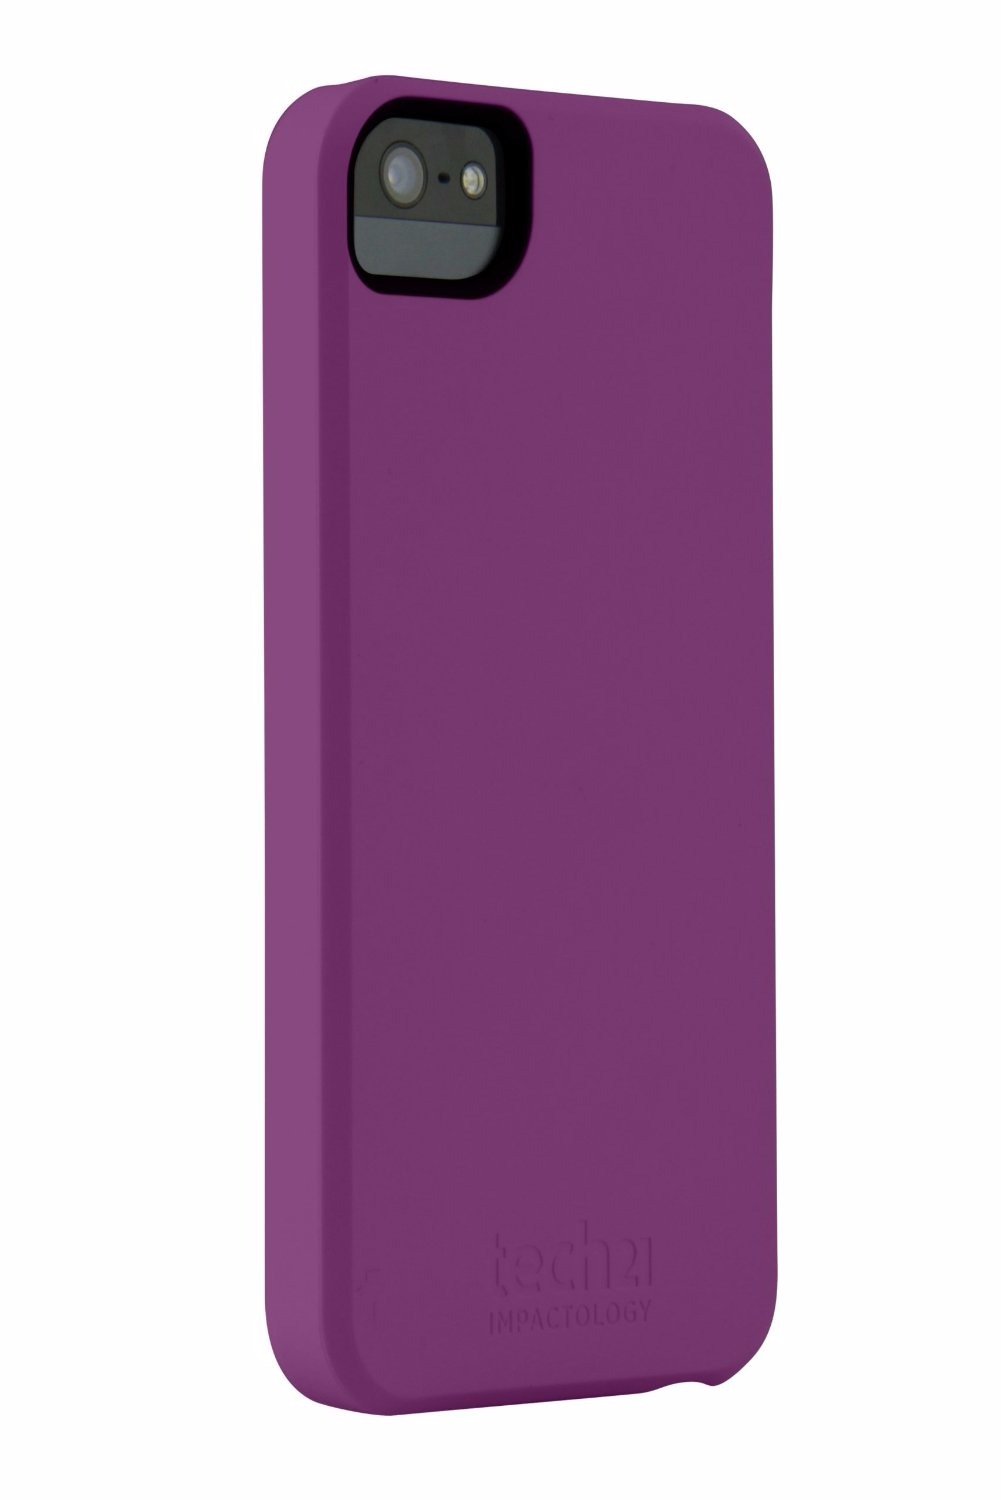 ebay iphone 5s tech21 d3o iphone 5 5s 5se impact snap purple t21 1813